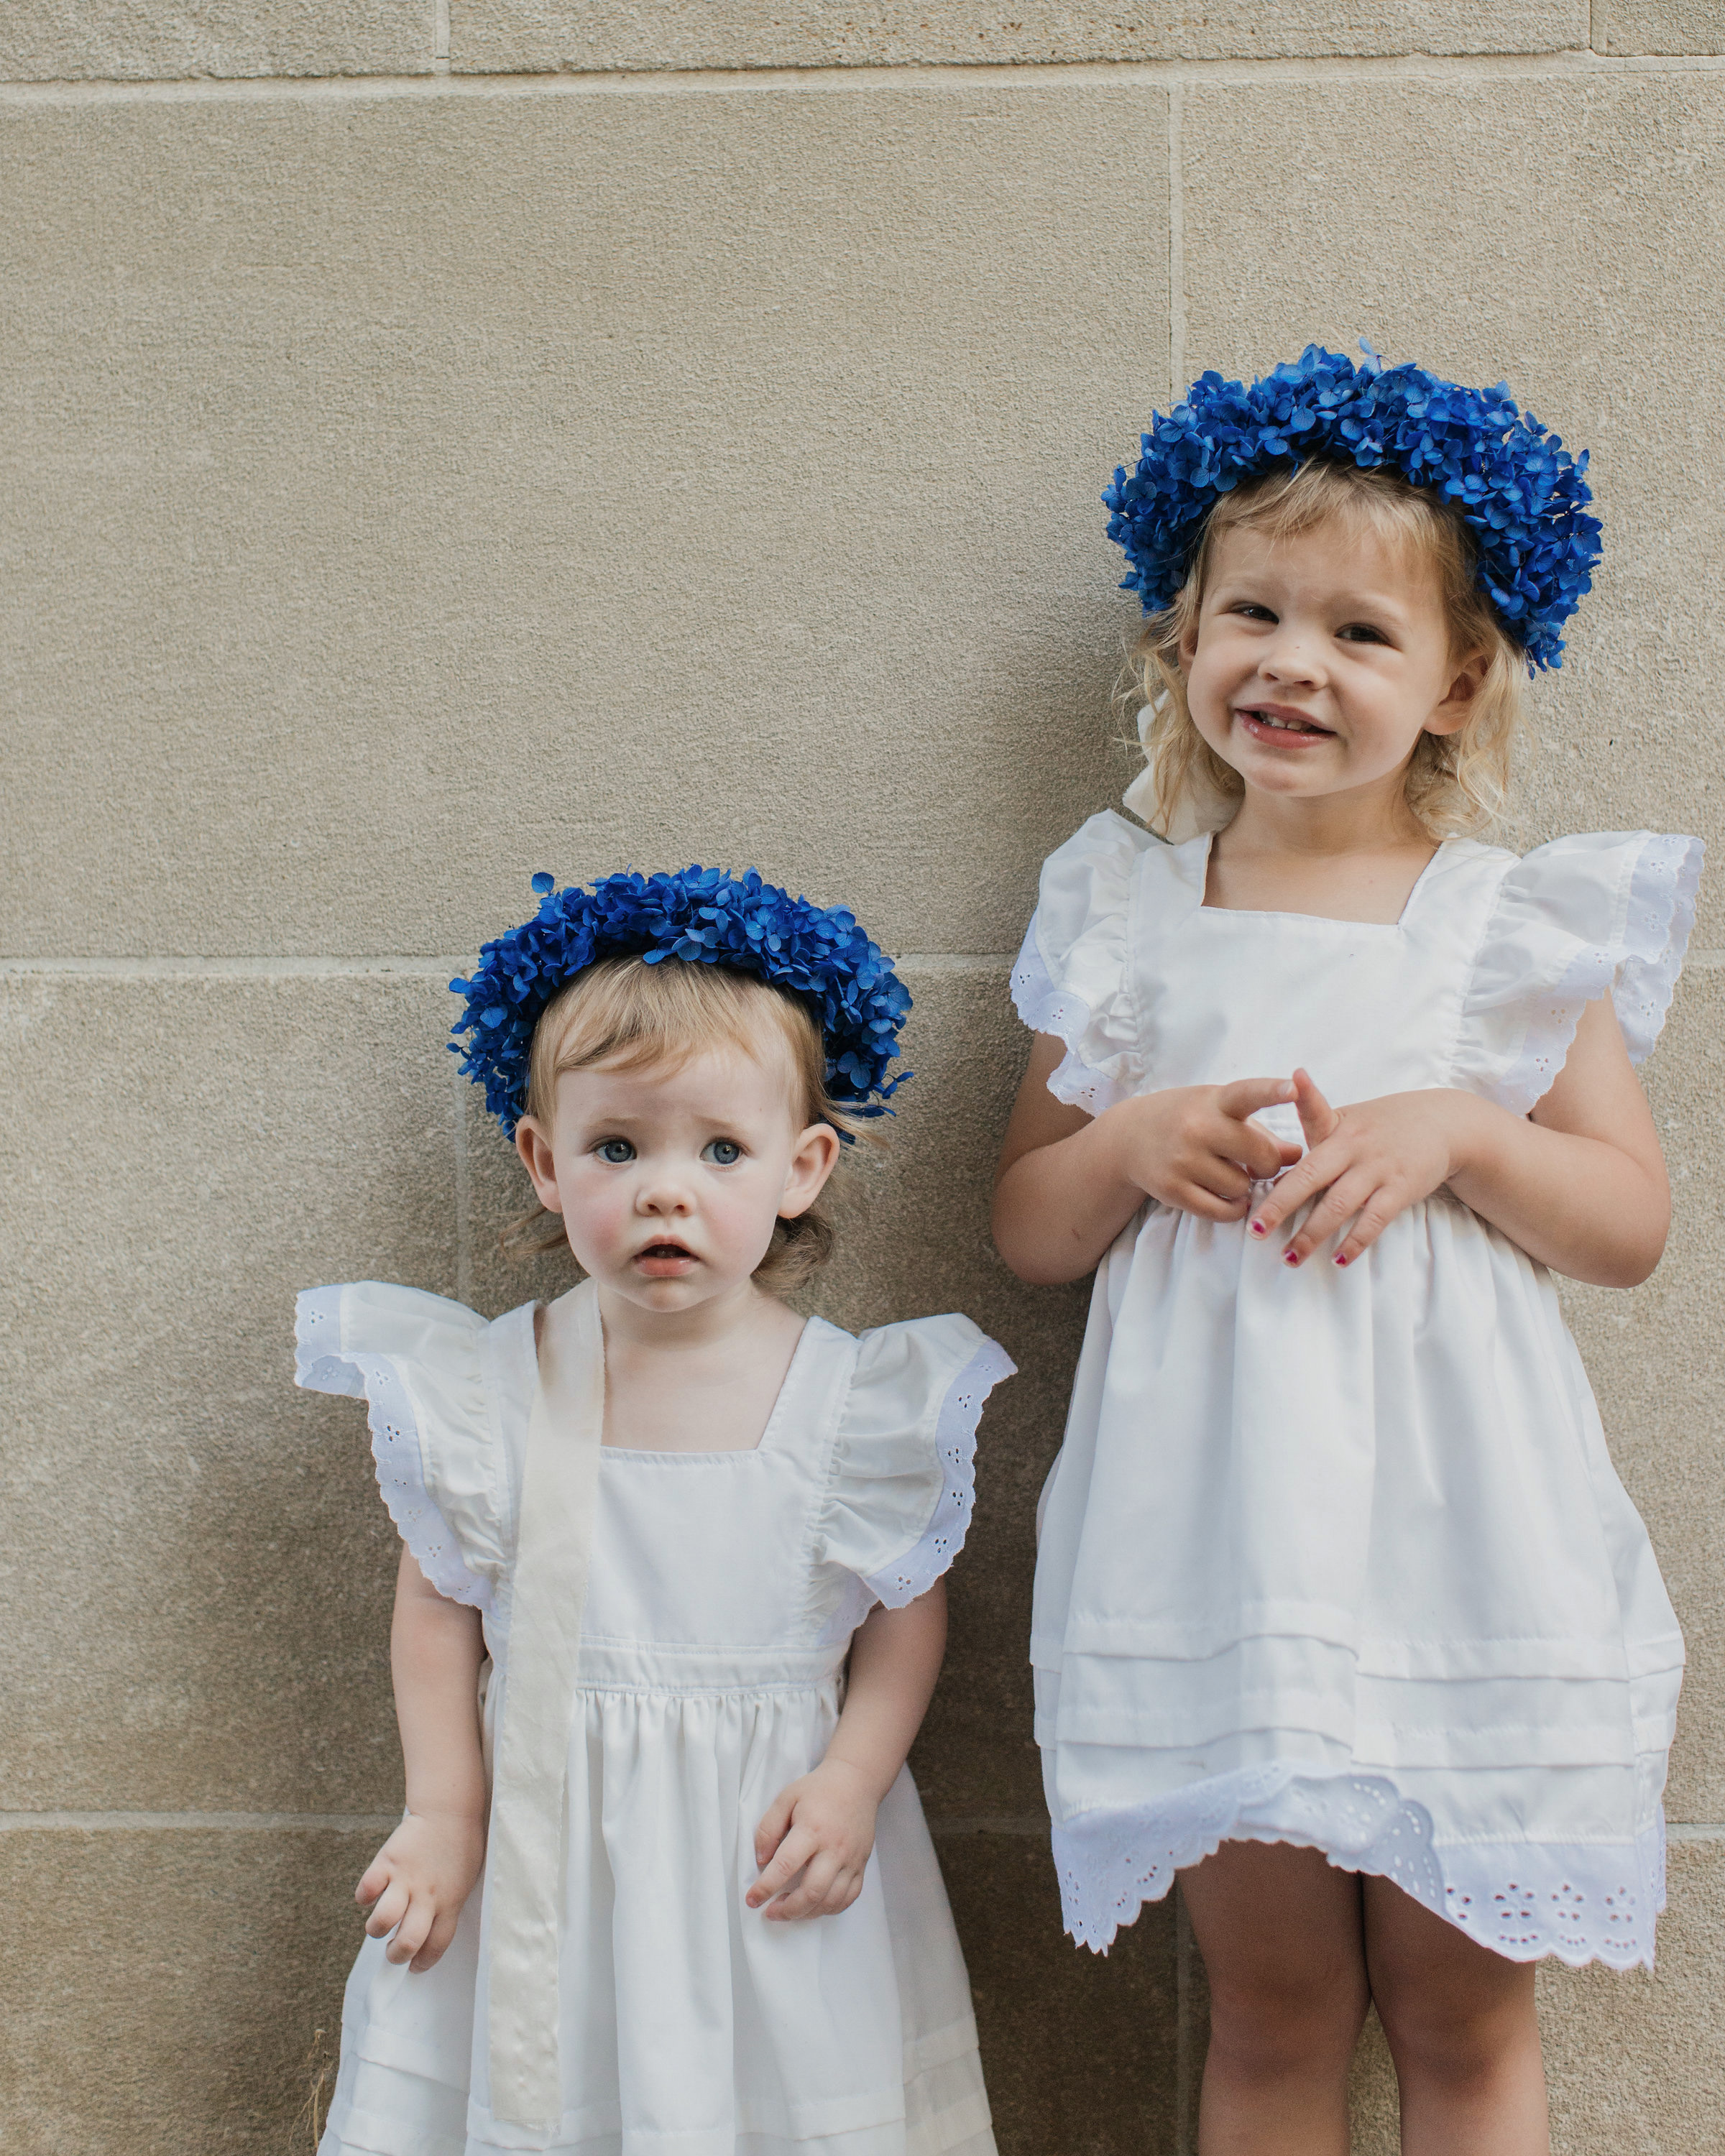 madison kyle wedding flowergirls